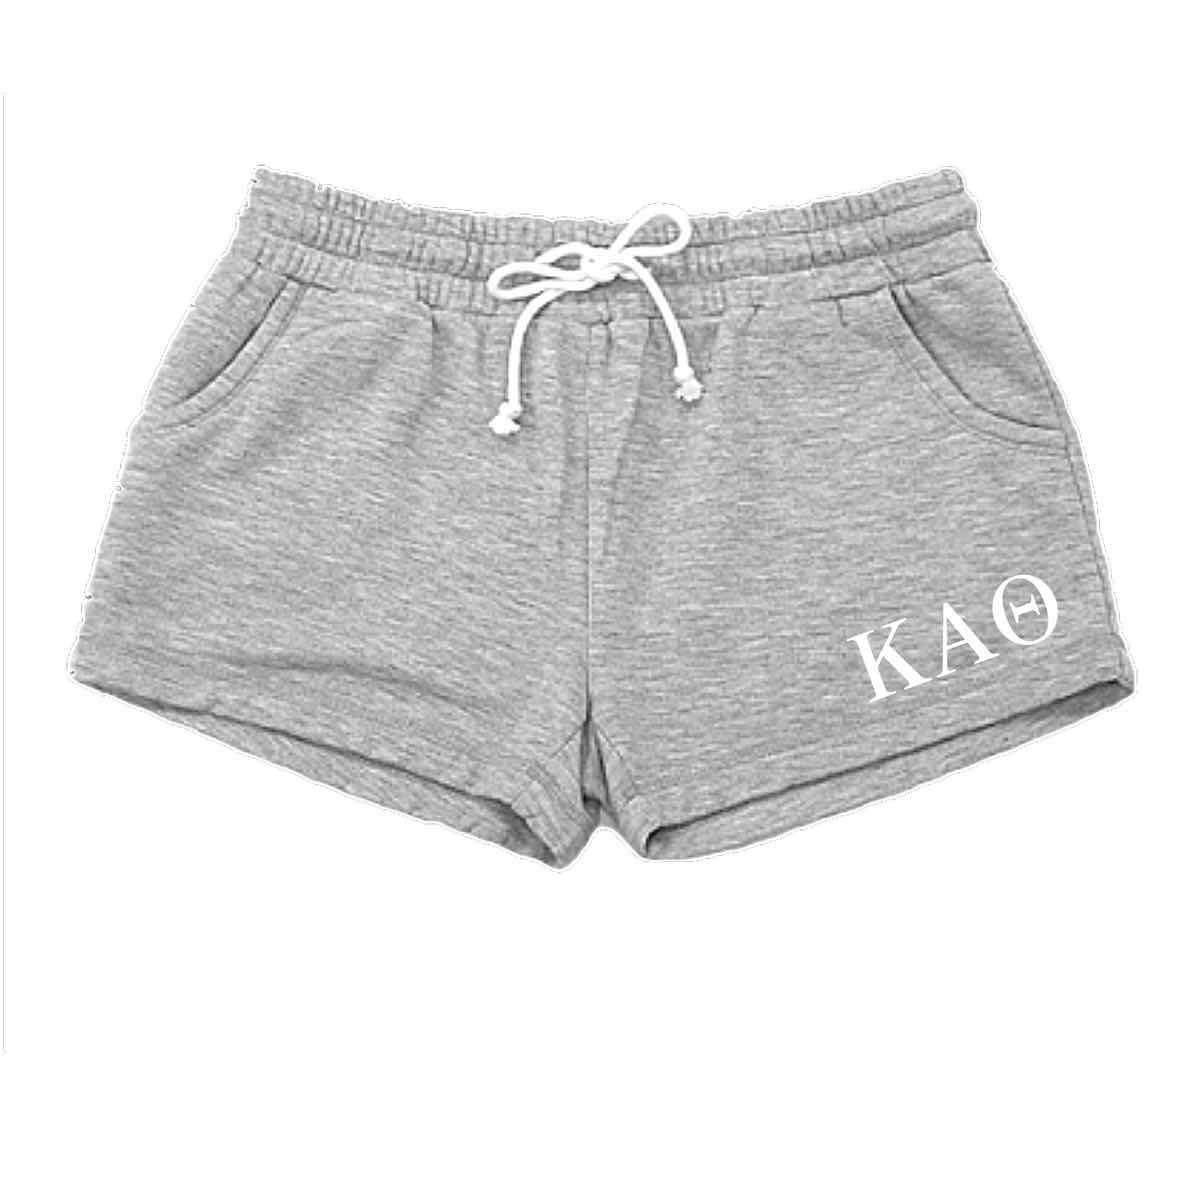 Kappa Alpha Theta Shorts with pockets and drawstring. Super soft, you will love these. #KappaAlphaTheta clothing to love. #Theta